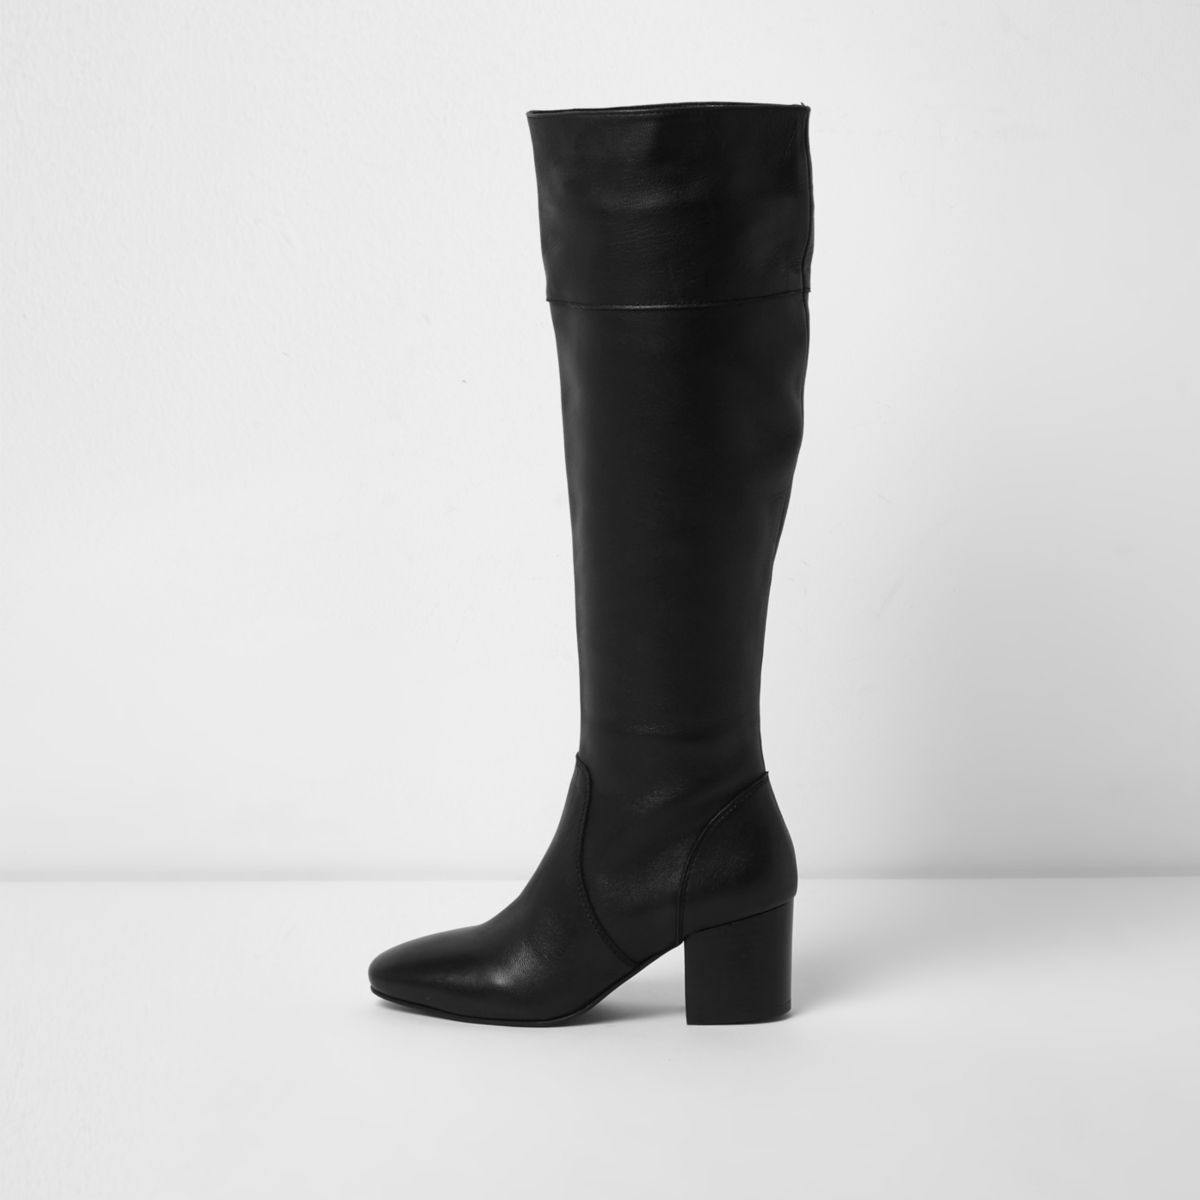 Black knee high leather block heel boots